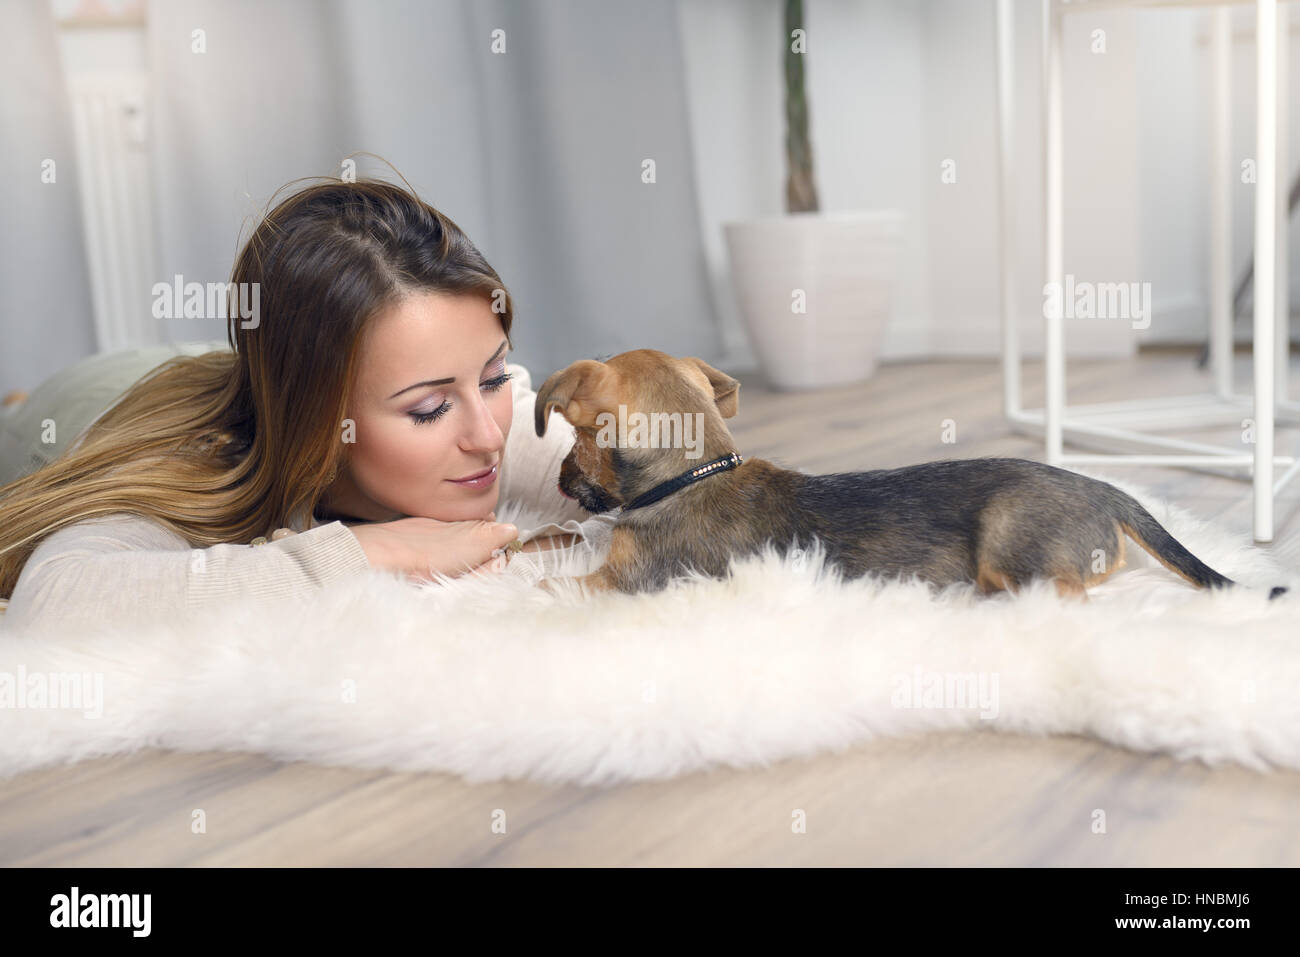 Loving young woman with her little dog playing a game together on a fluffy white rug in the house in a show of loyalty - Stock Image